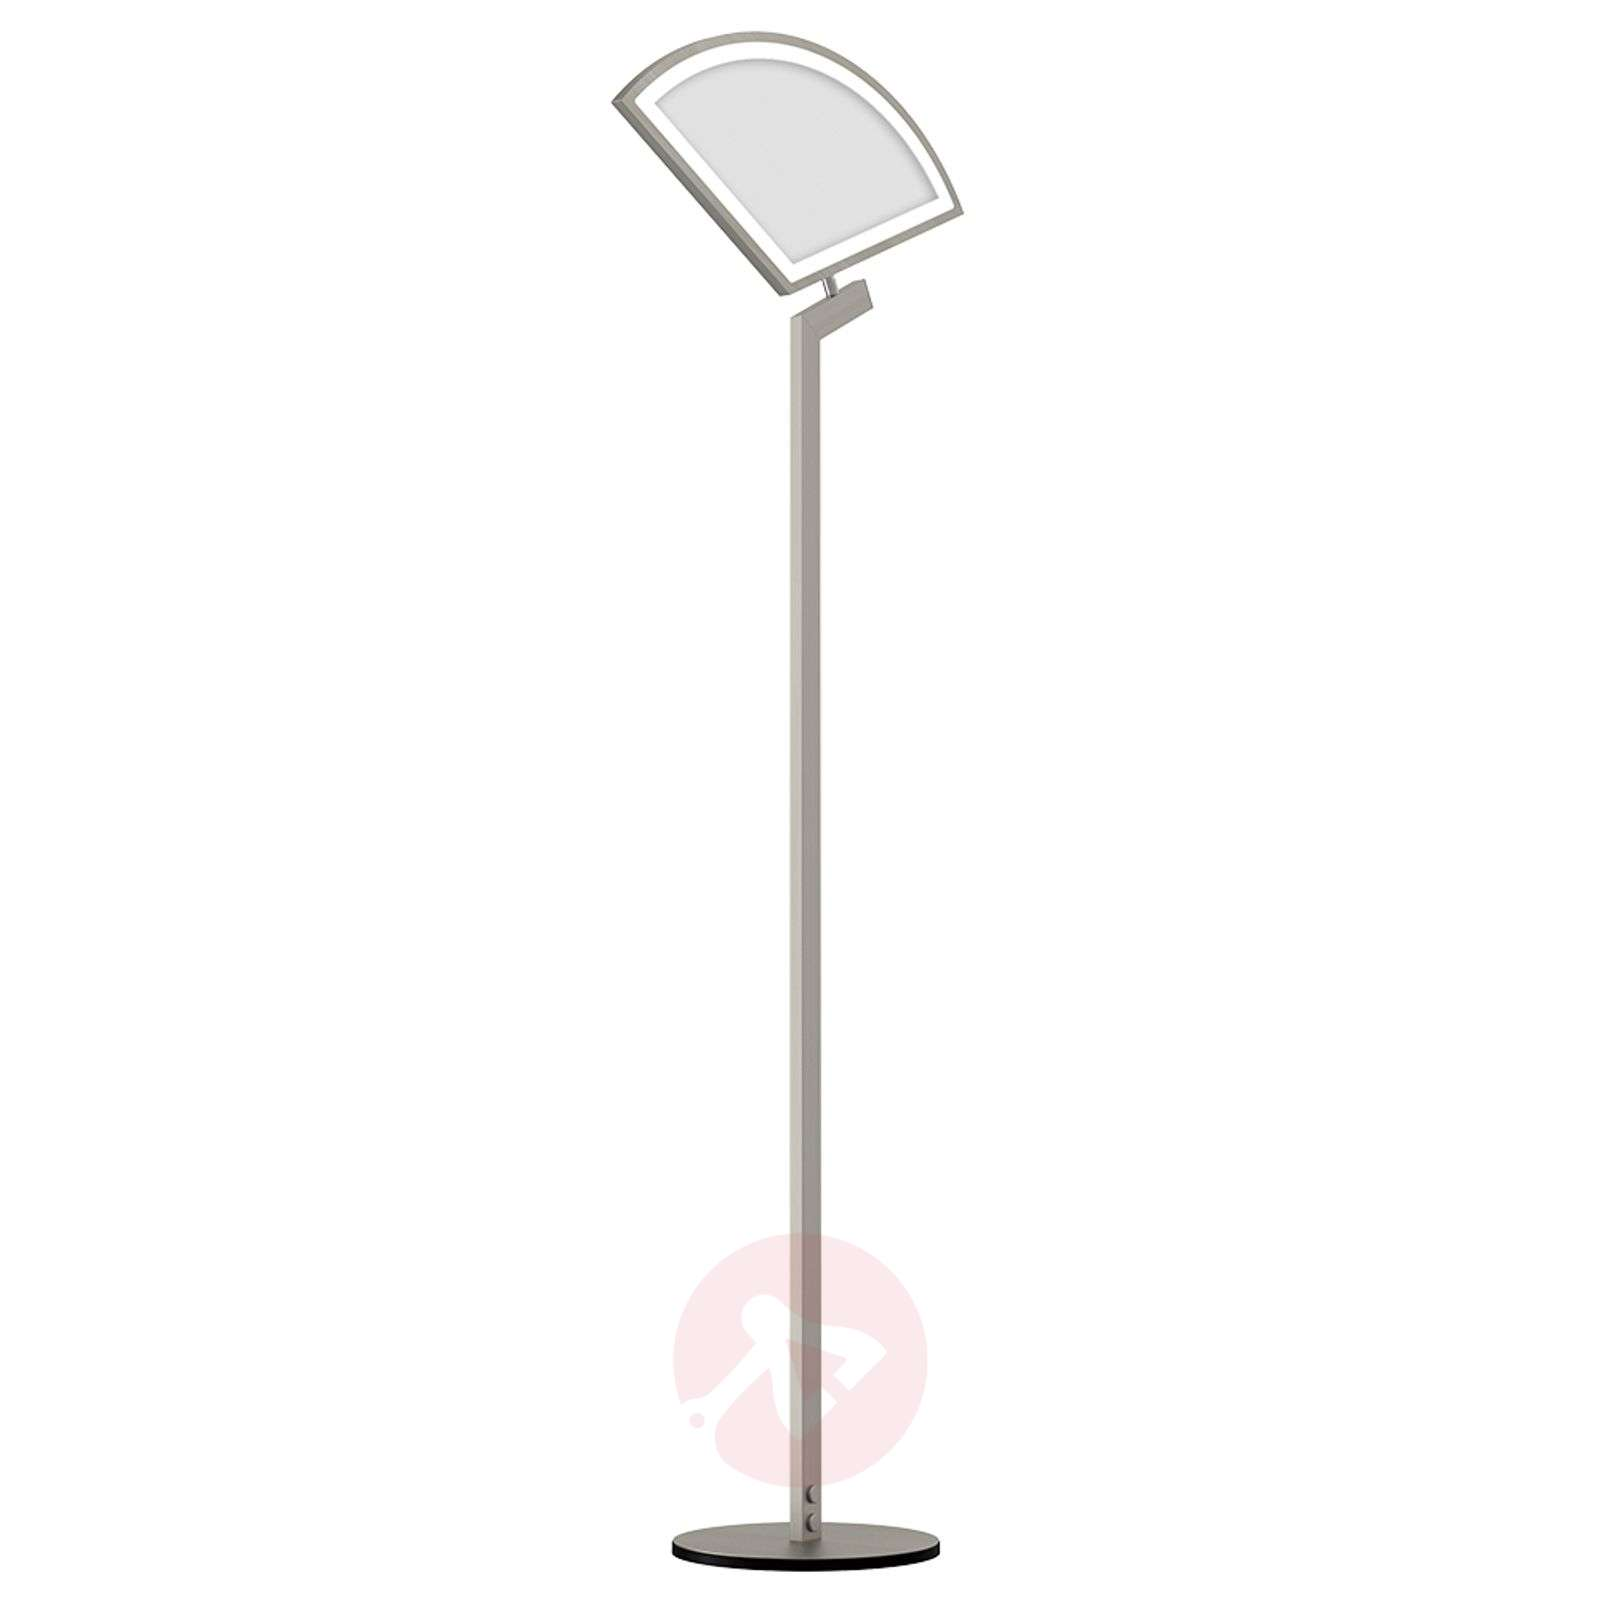 Movil modern led floor lamp with remote control lights movil modern led floor lamp with remote control 3025290 01 aloadofball Images